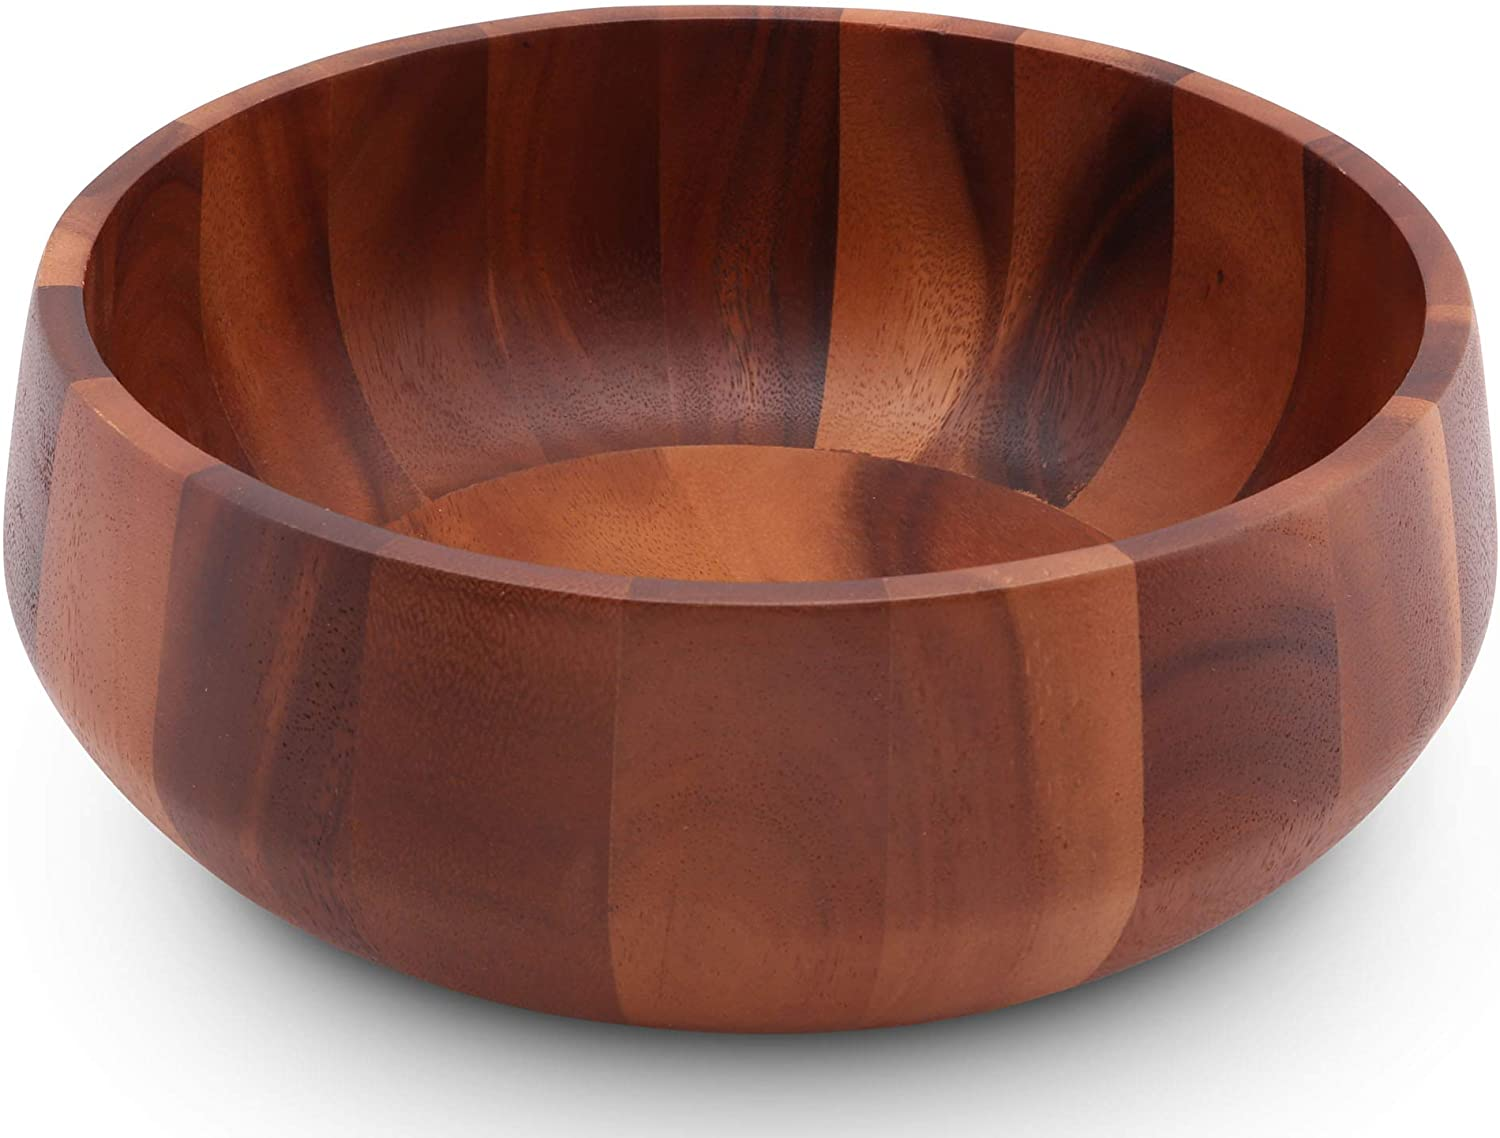 Arthur Court Acacia Wood Serving Bowl for Fruits or Salads Modern Round Shape Style Large 11